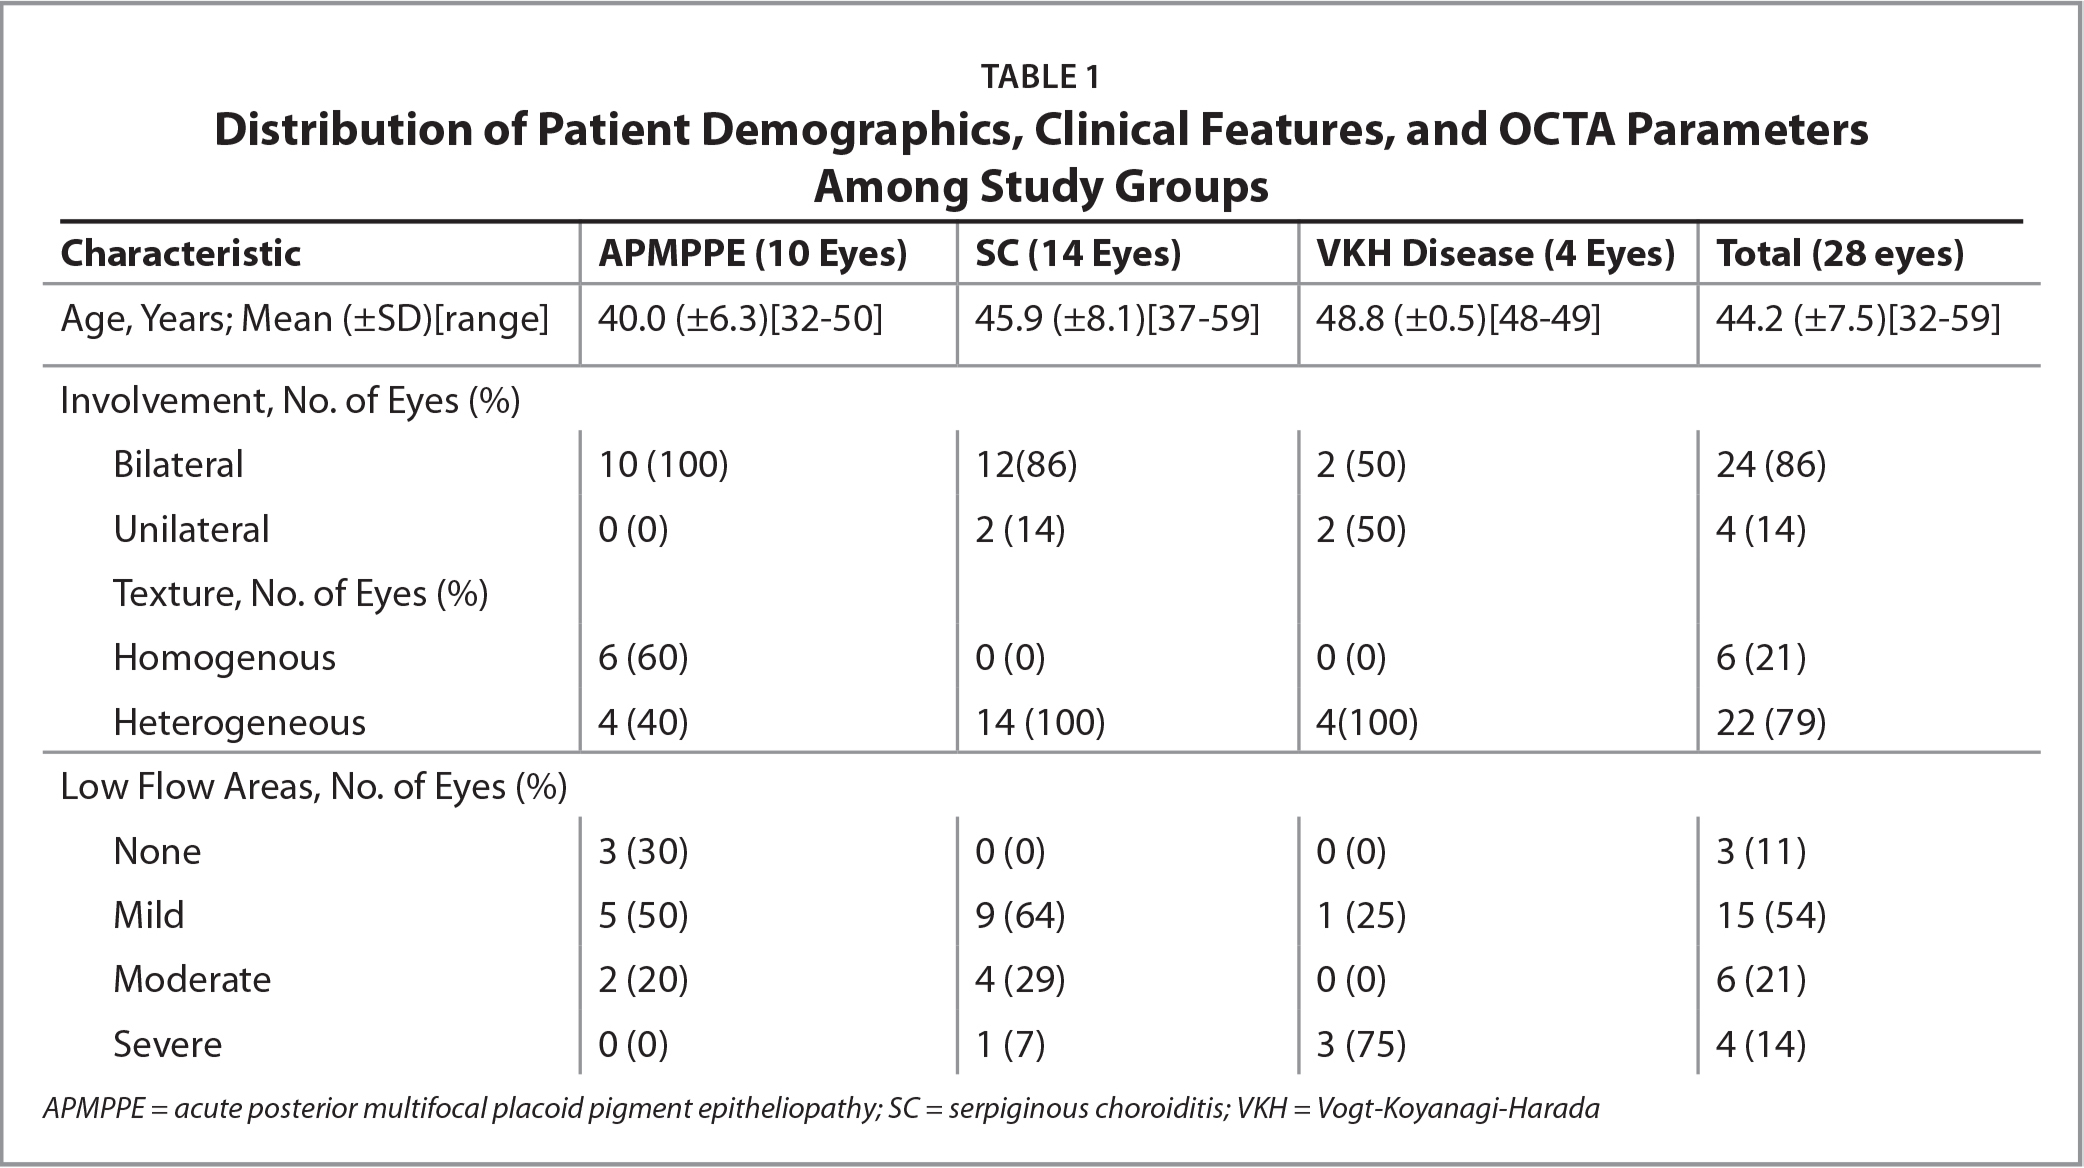 Distribution of Patient Demographics, Clinical Features, and OCTA ParametersAmong Study Groups